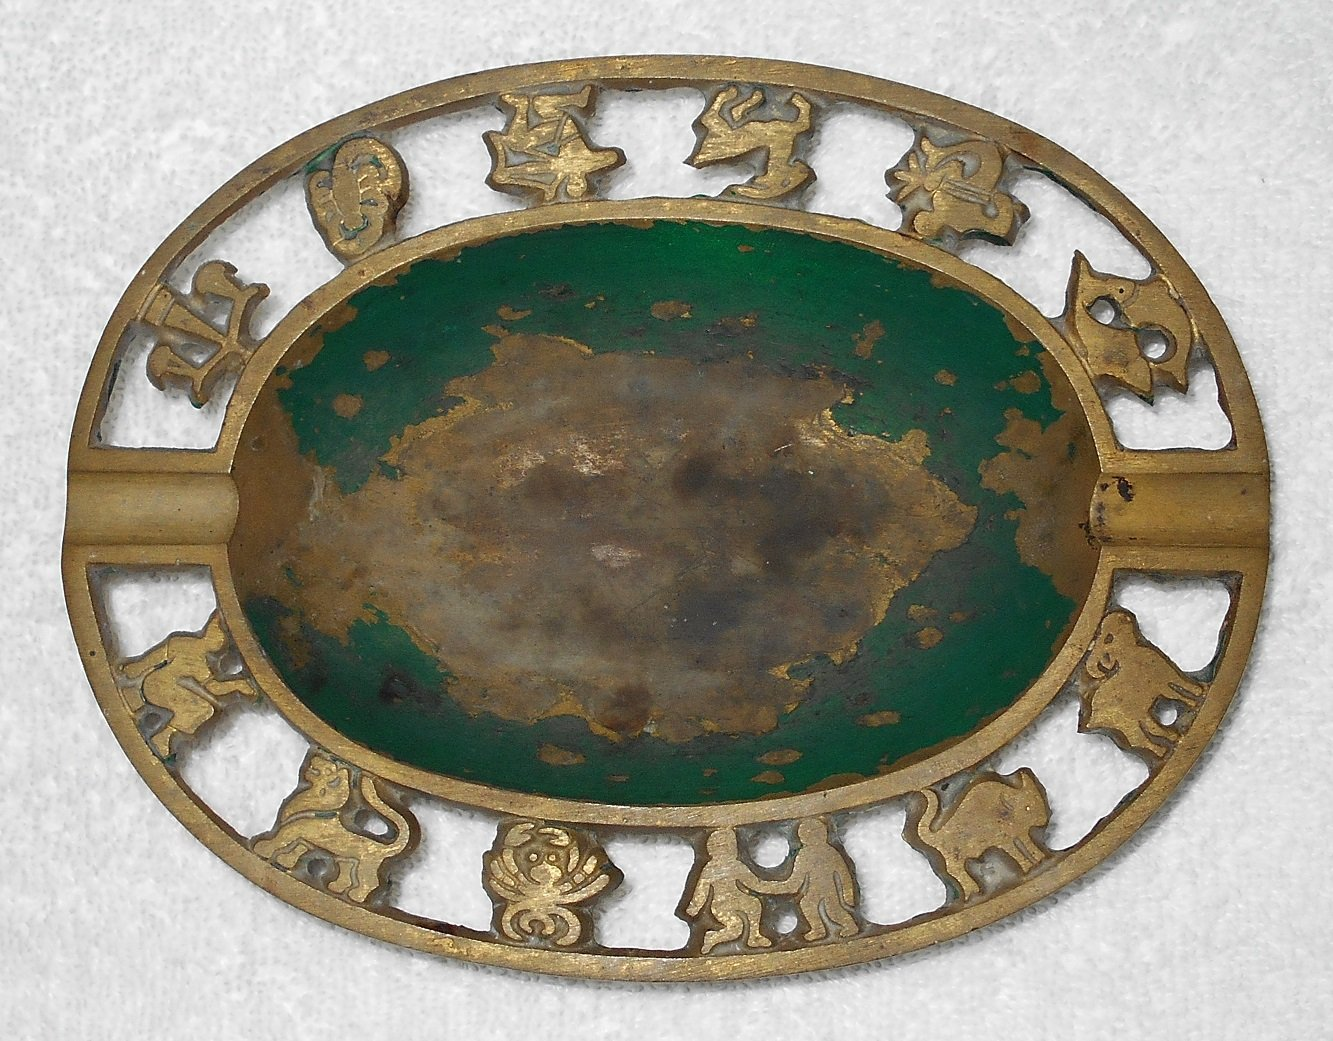 Brass Ashtray With Astrological Zodiac Signs - Made In Israel - Vintage